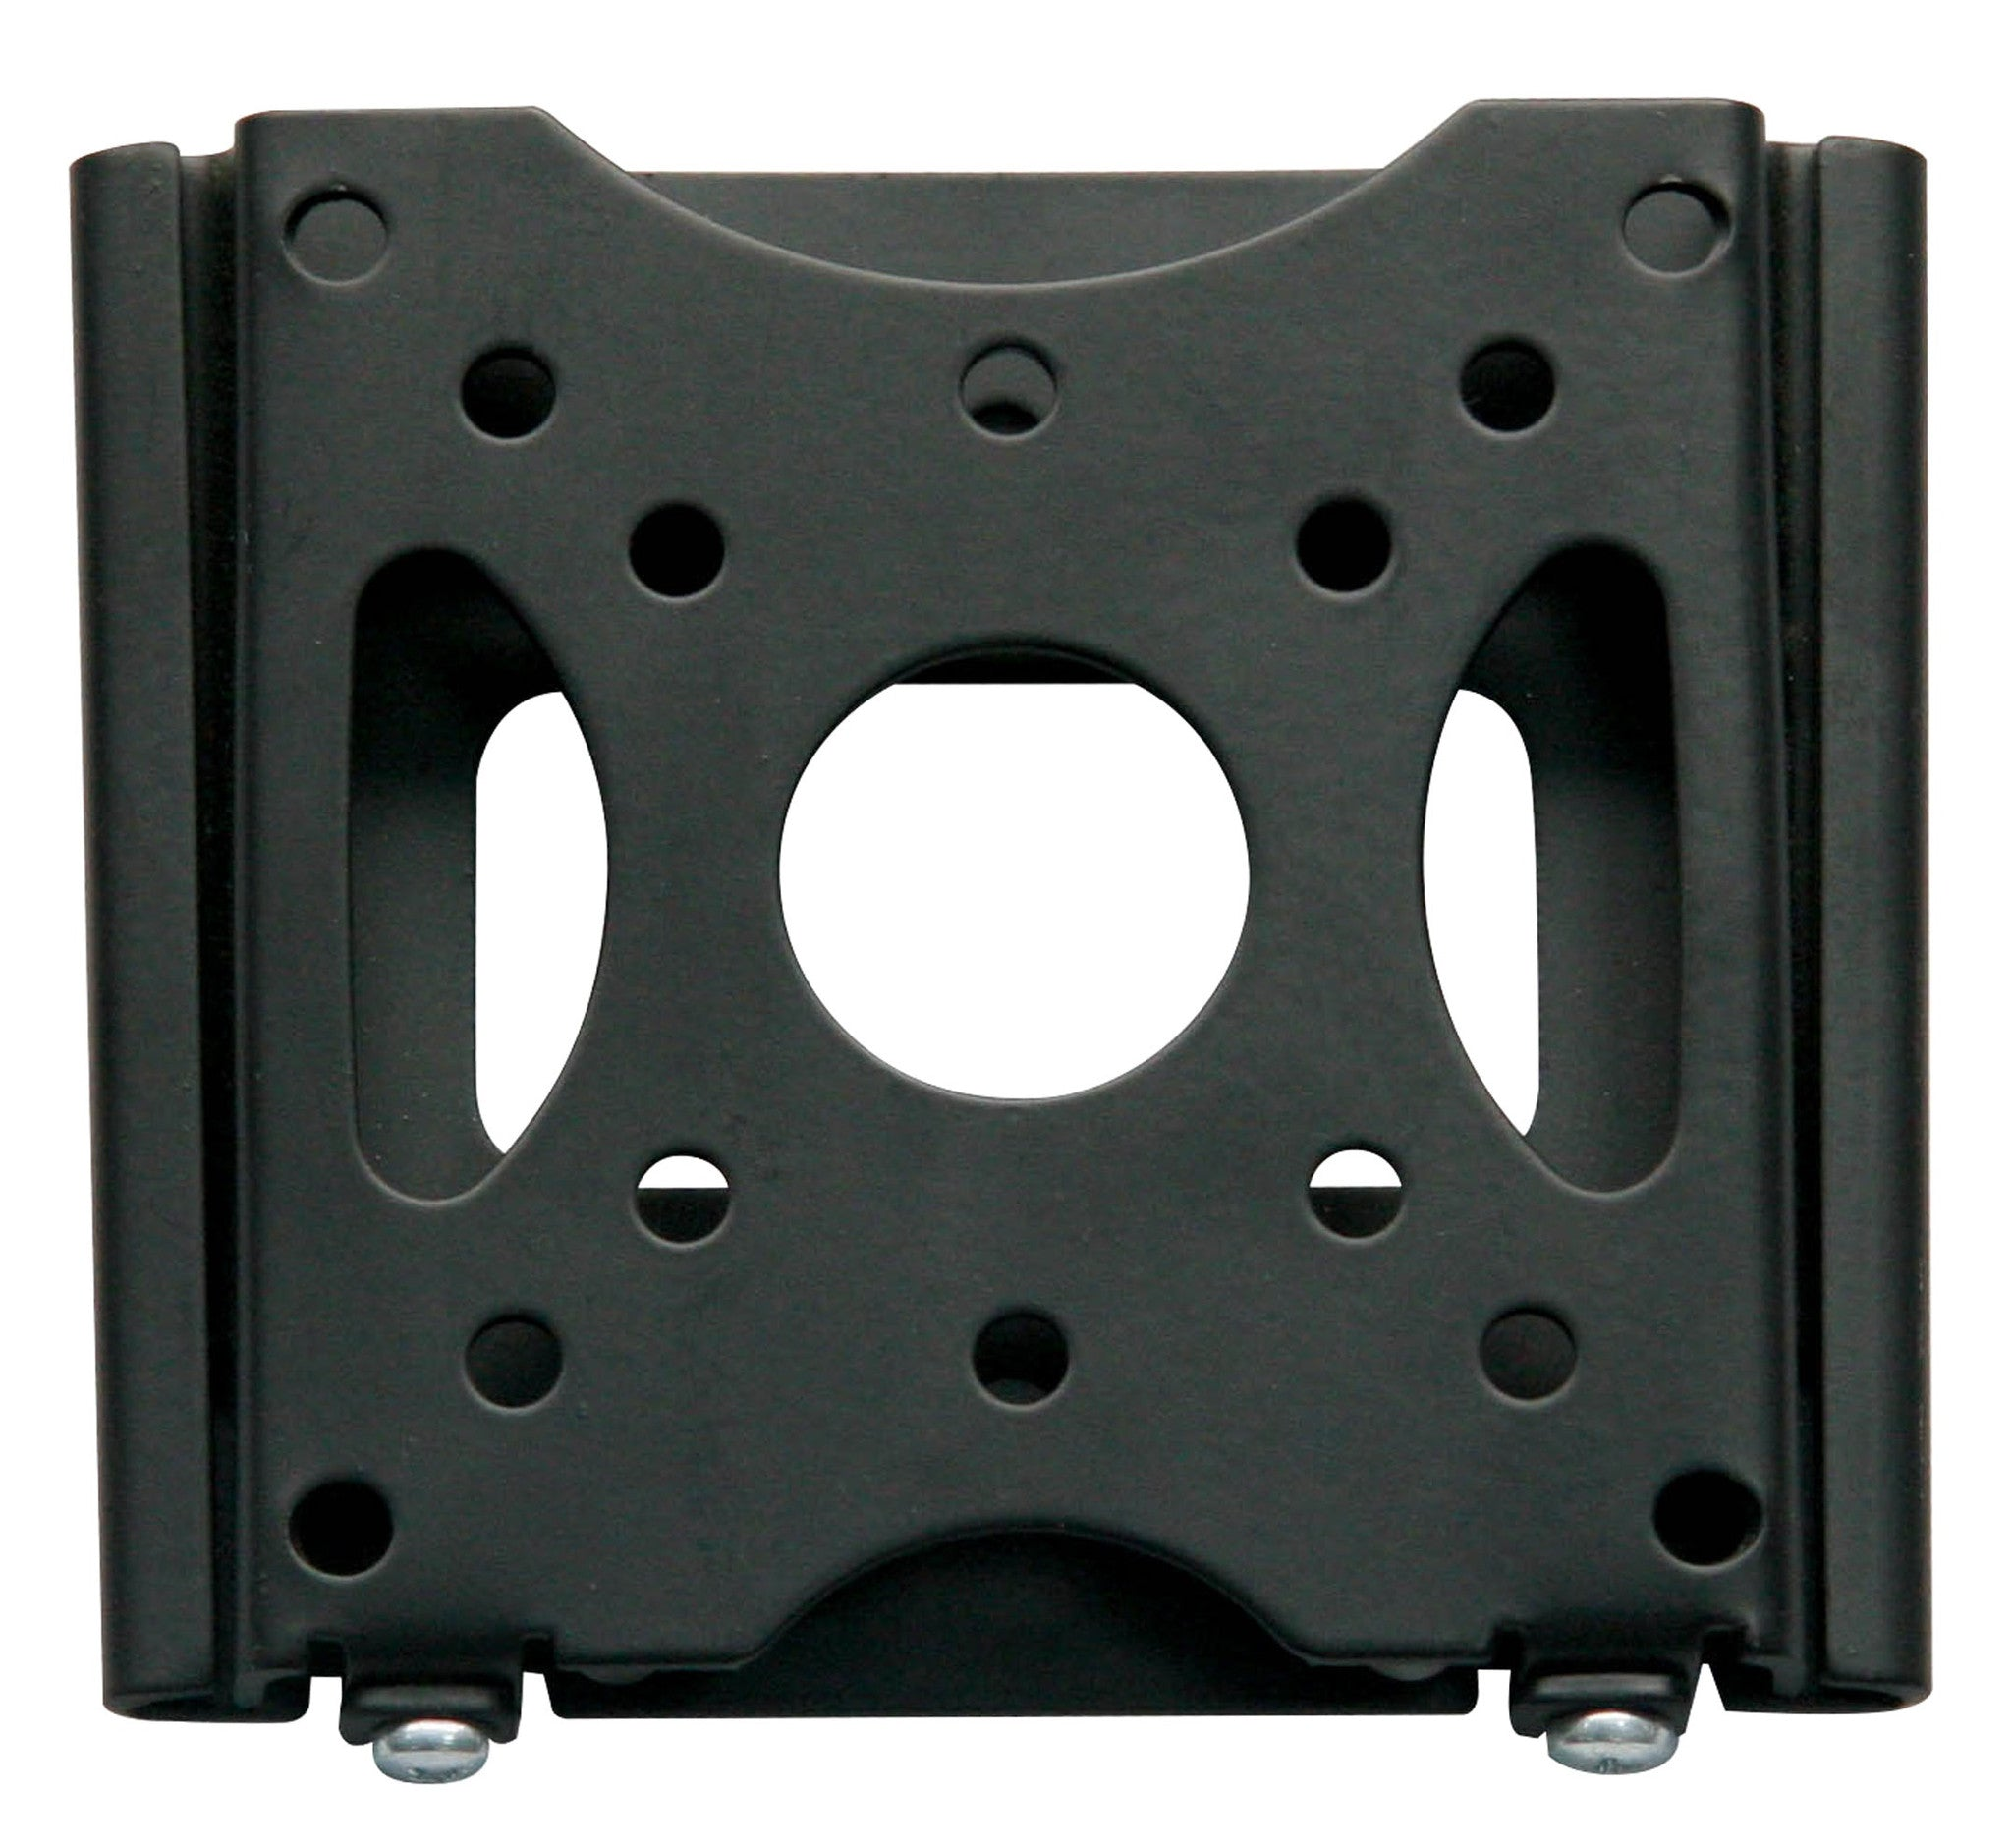 DYNALINK DYNALINK LCD Monitor Slimline Fixed Wall Bracket - BNR Industrial